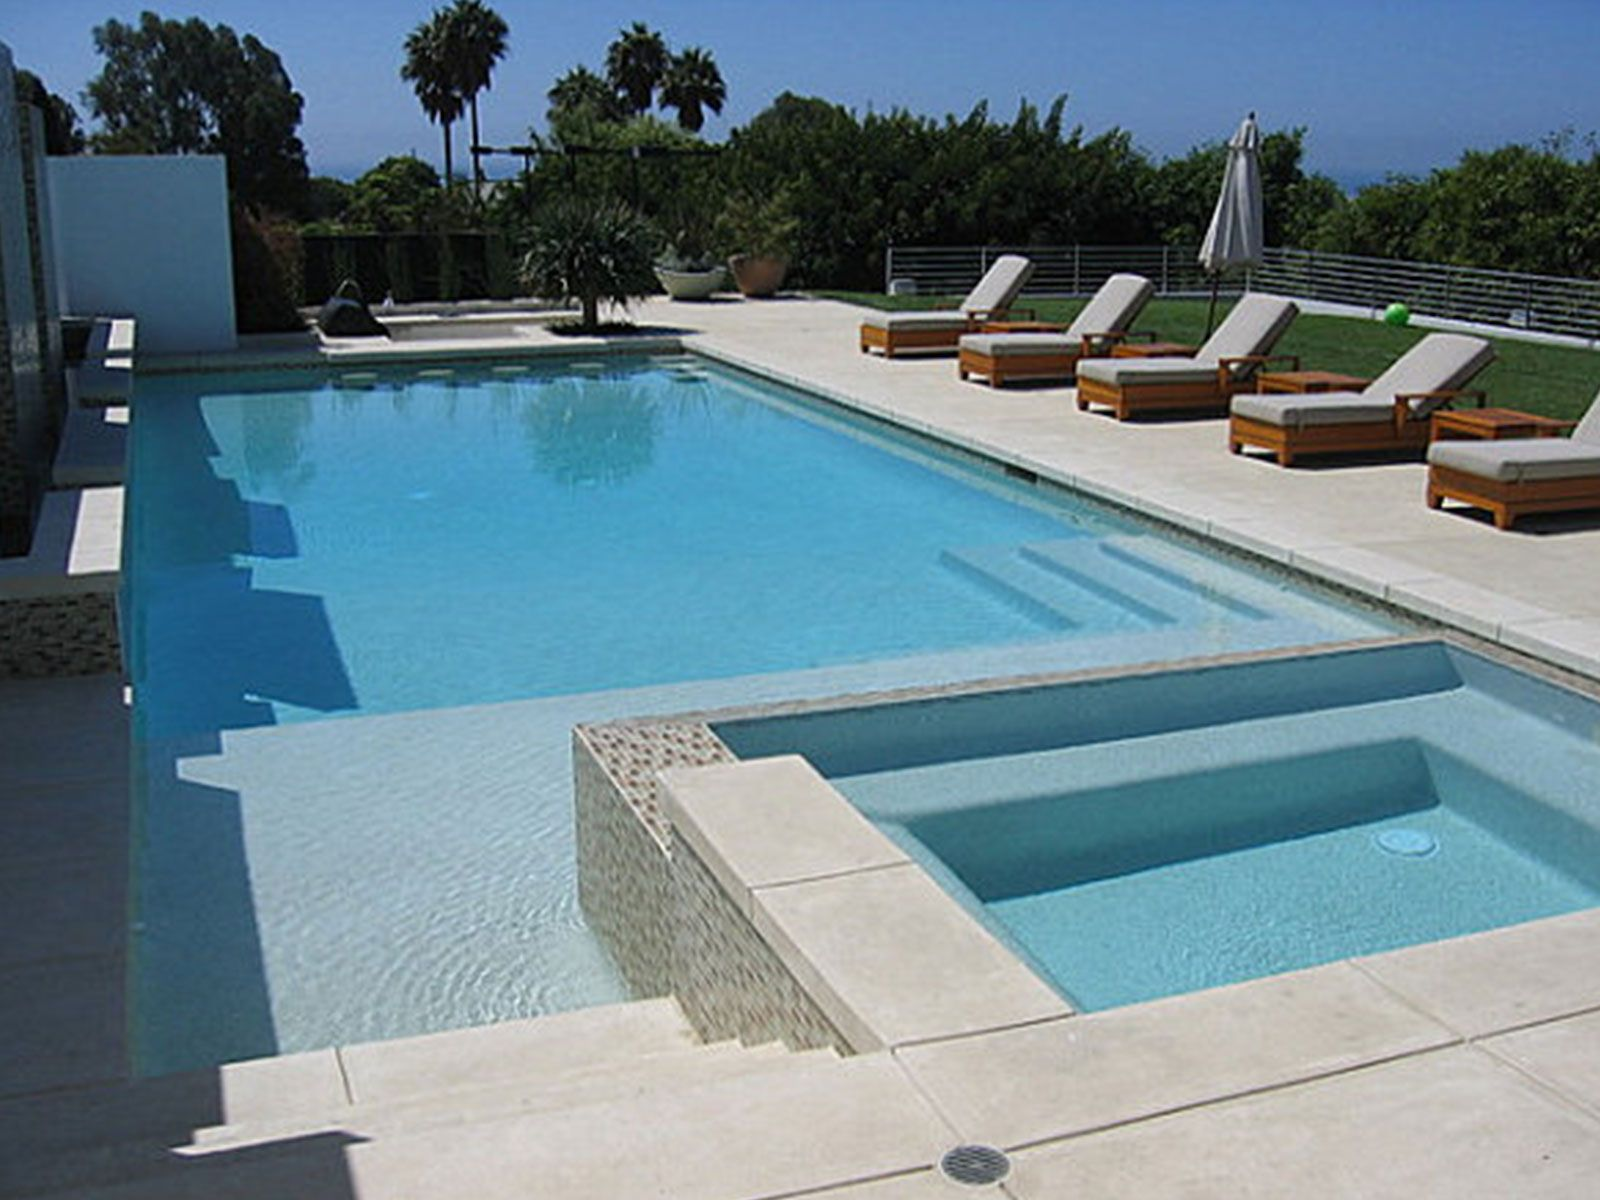 Simple swimming pool design image modern creative swimming for Swimming pool design for home